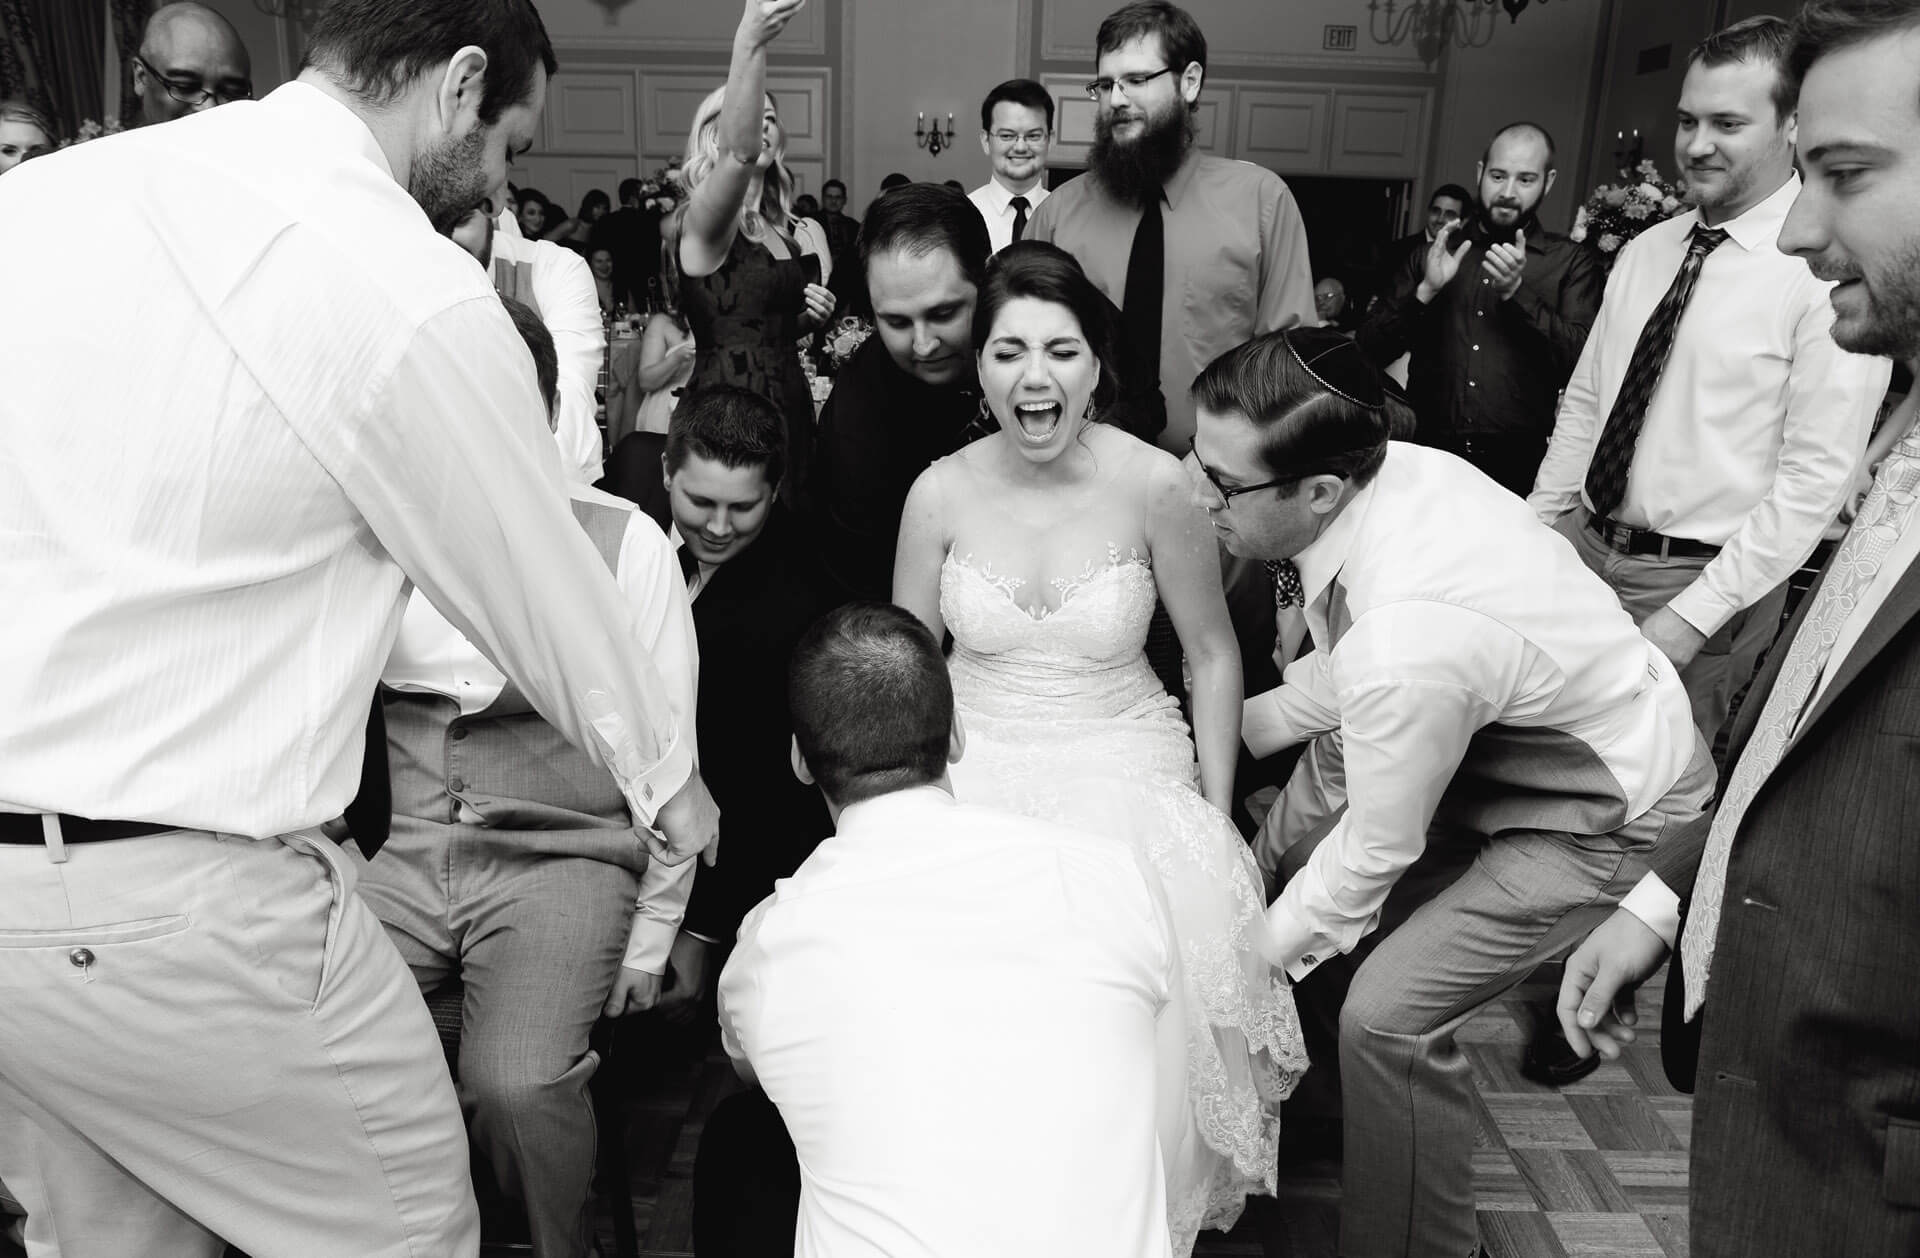 Documentary wedding photo of a bride about to be lifted for the Hora dance during a Jewish wedding in Detroit, Michigan.